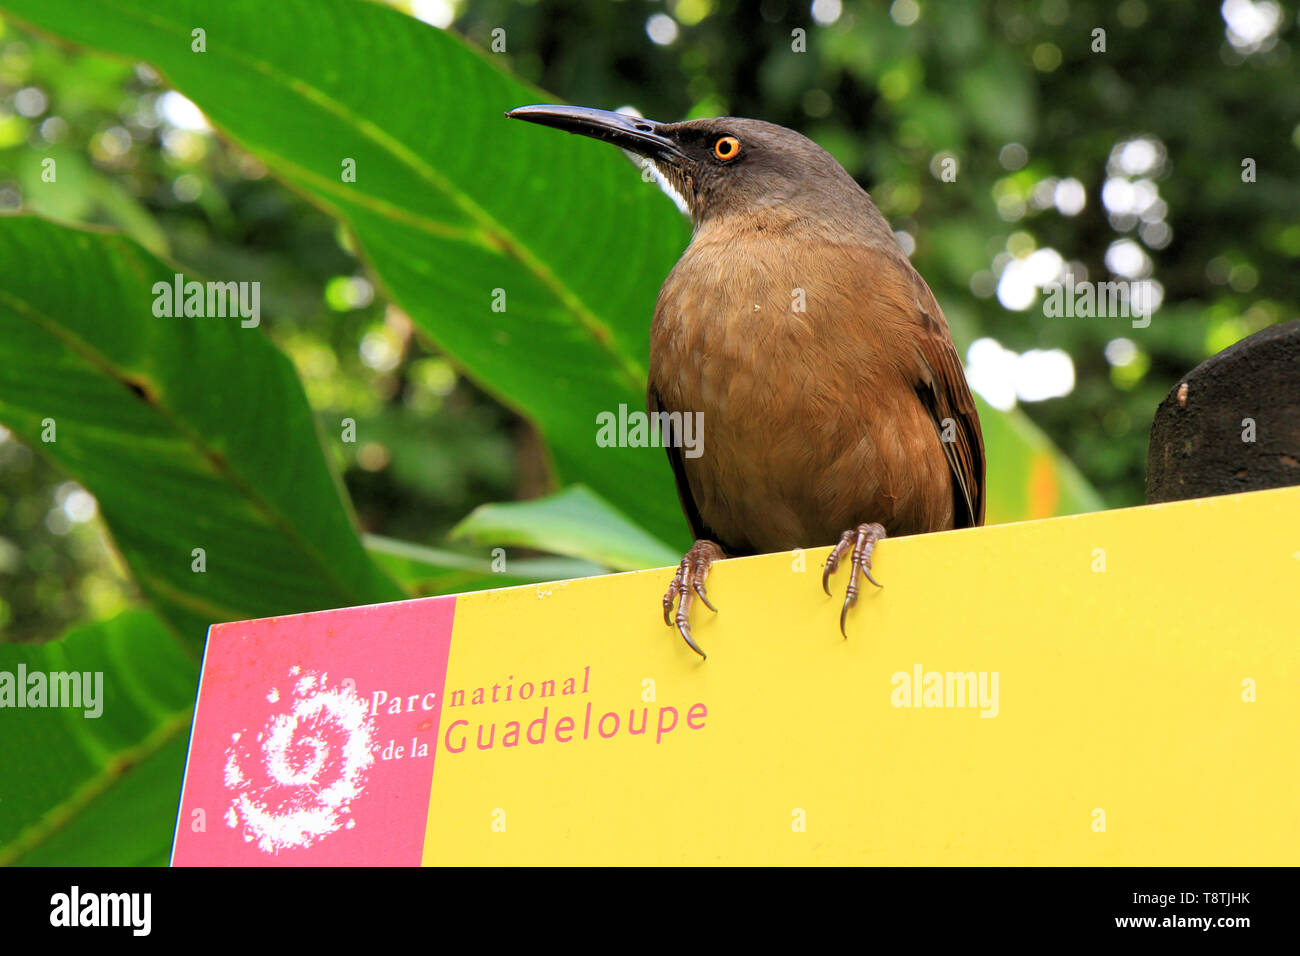 Brown trembler on a Guadeloupe National Park sign, Grande-Terre, Guadeloupe, Caribbean islands, France - Stock Image